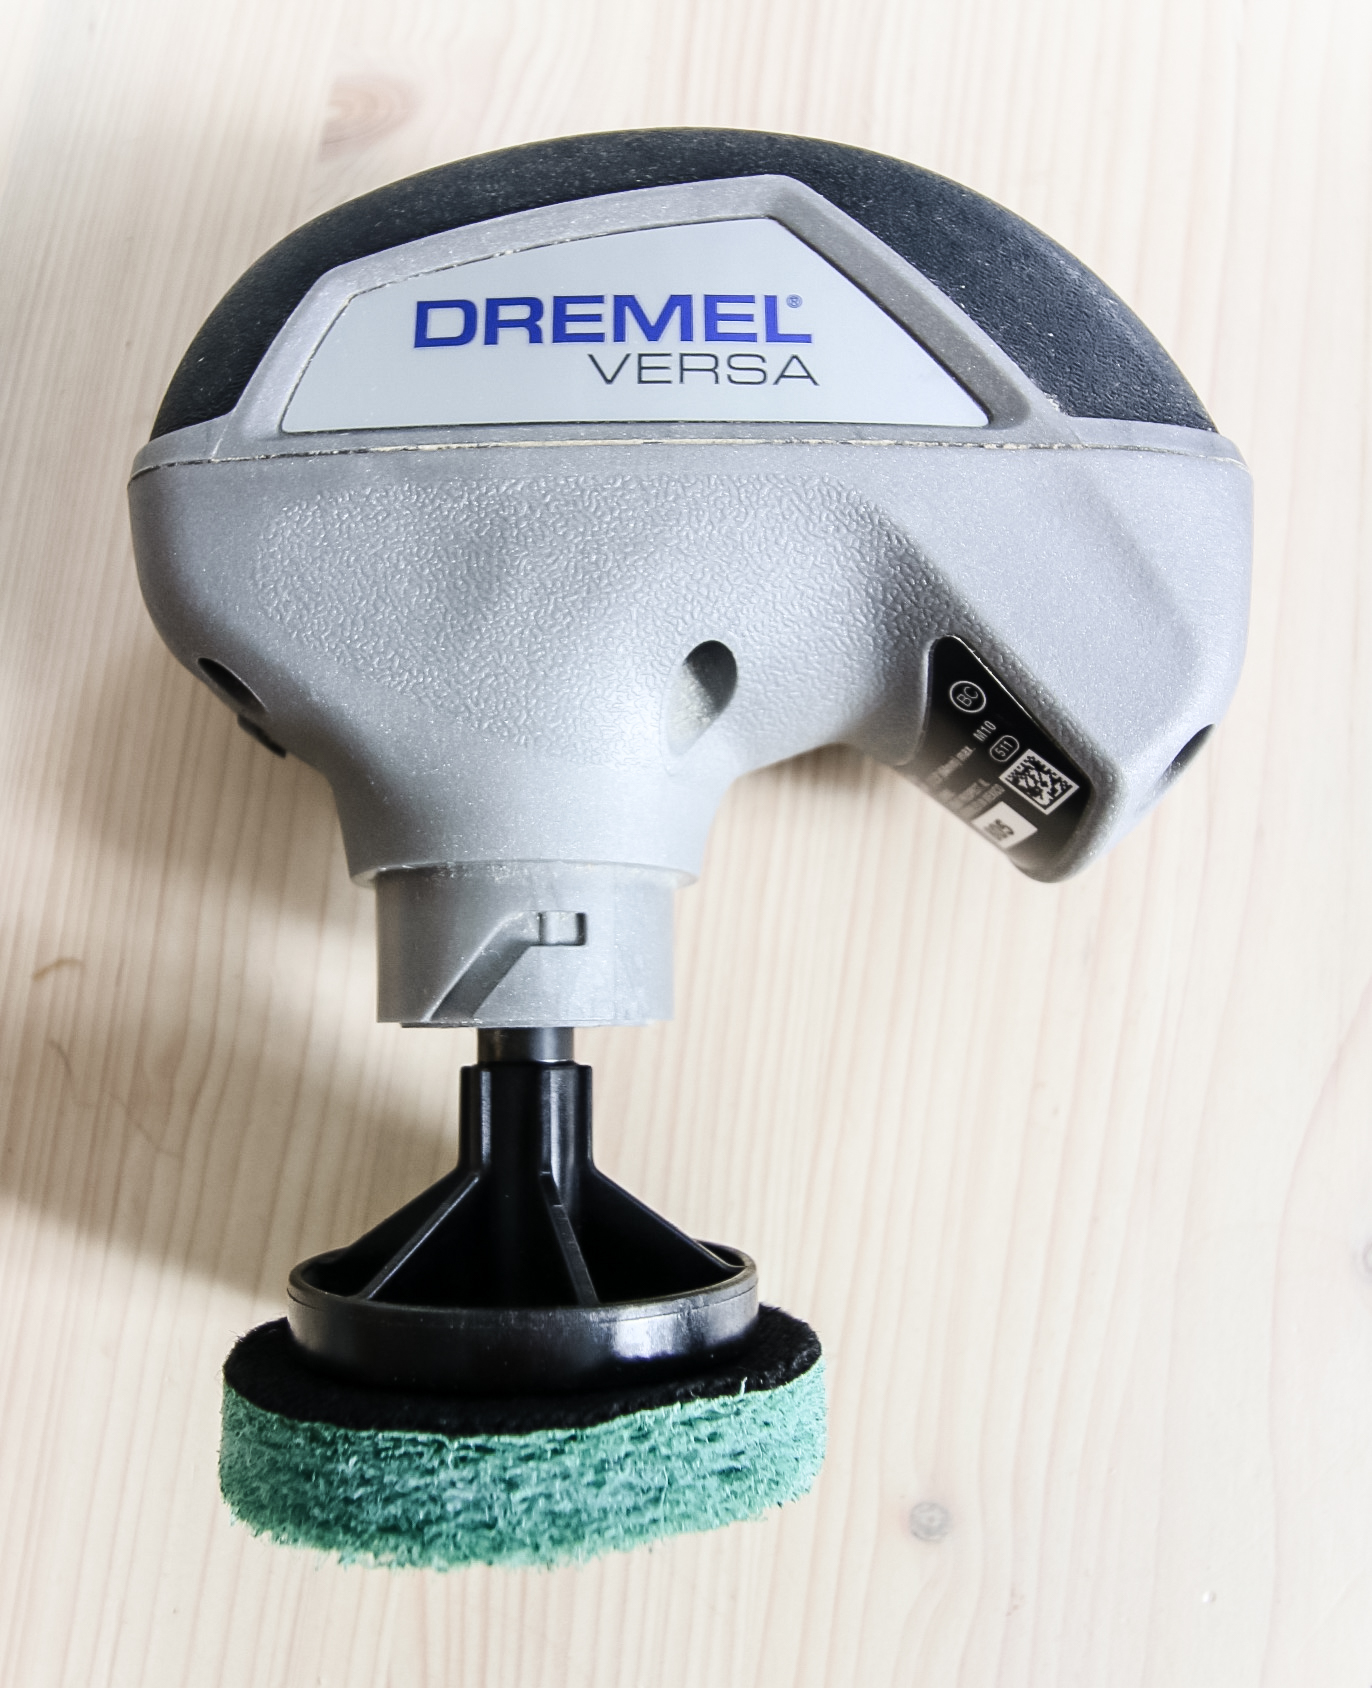 Dremel Versa Cleaning Tool - Charleston Crafted